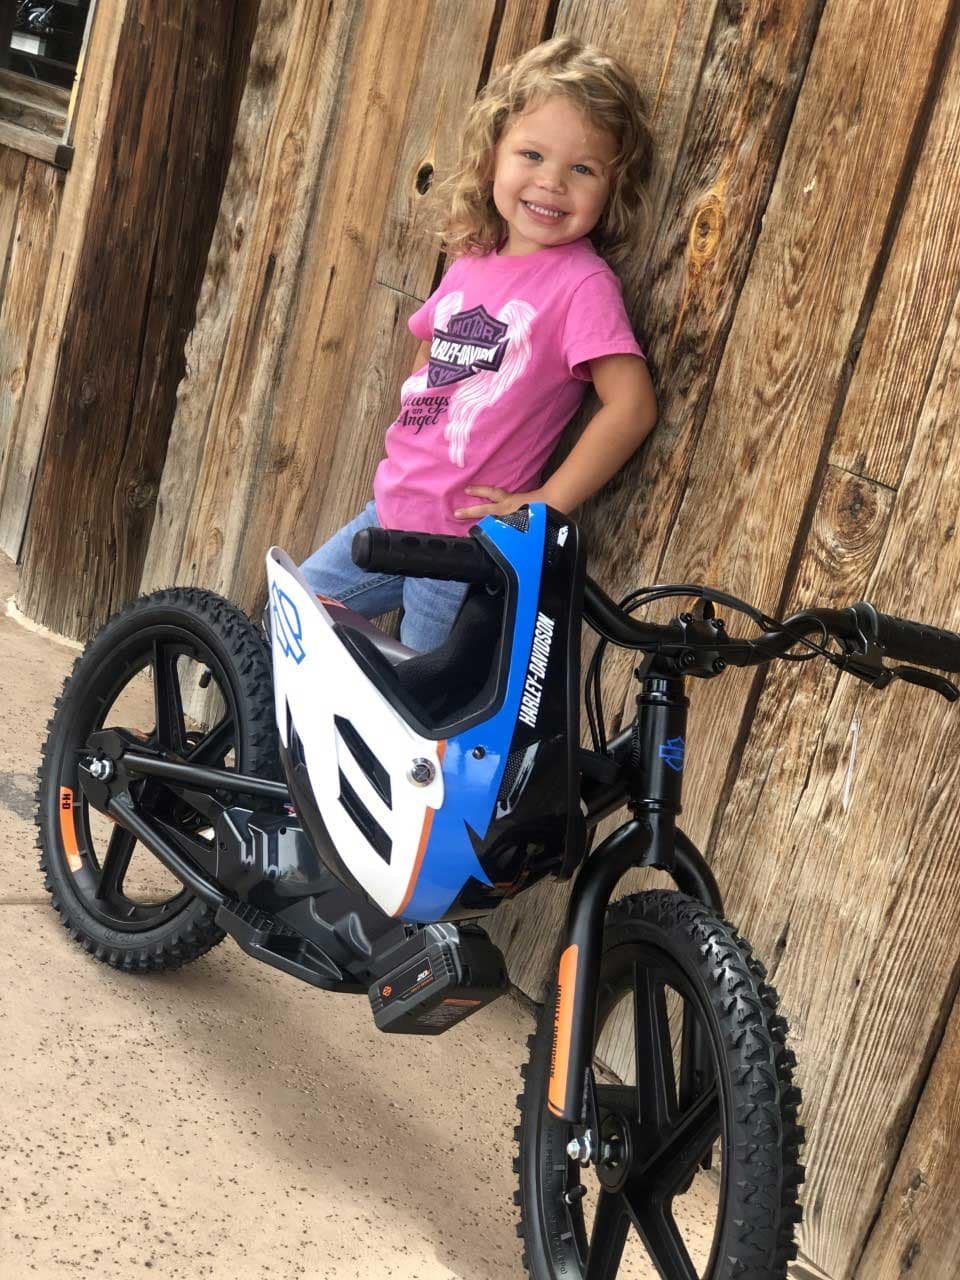 Harley Kids Clothing and Irone Kids Bike